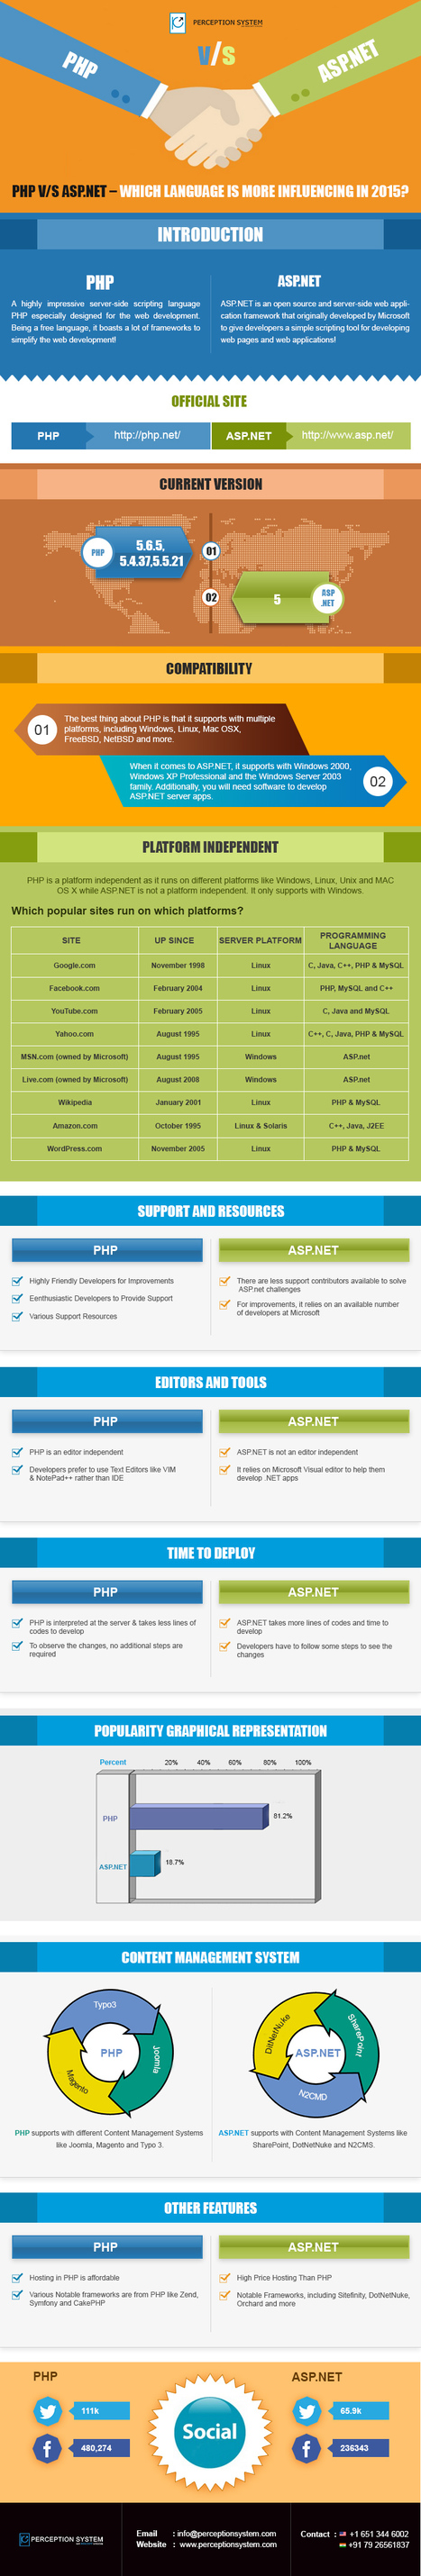 Which is The Most Powerful Programming Language PHP or ASP.NET? | Infographic | Scoop.it